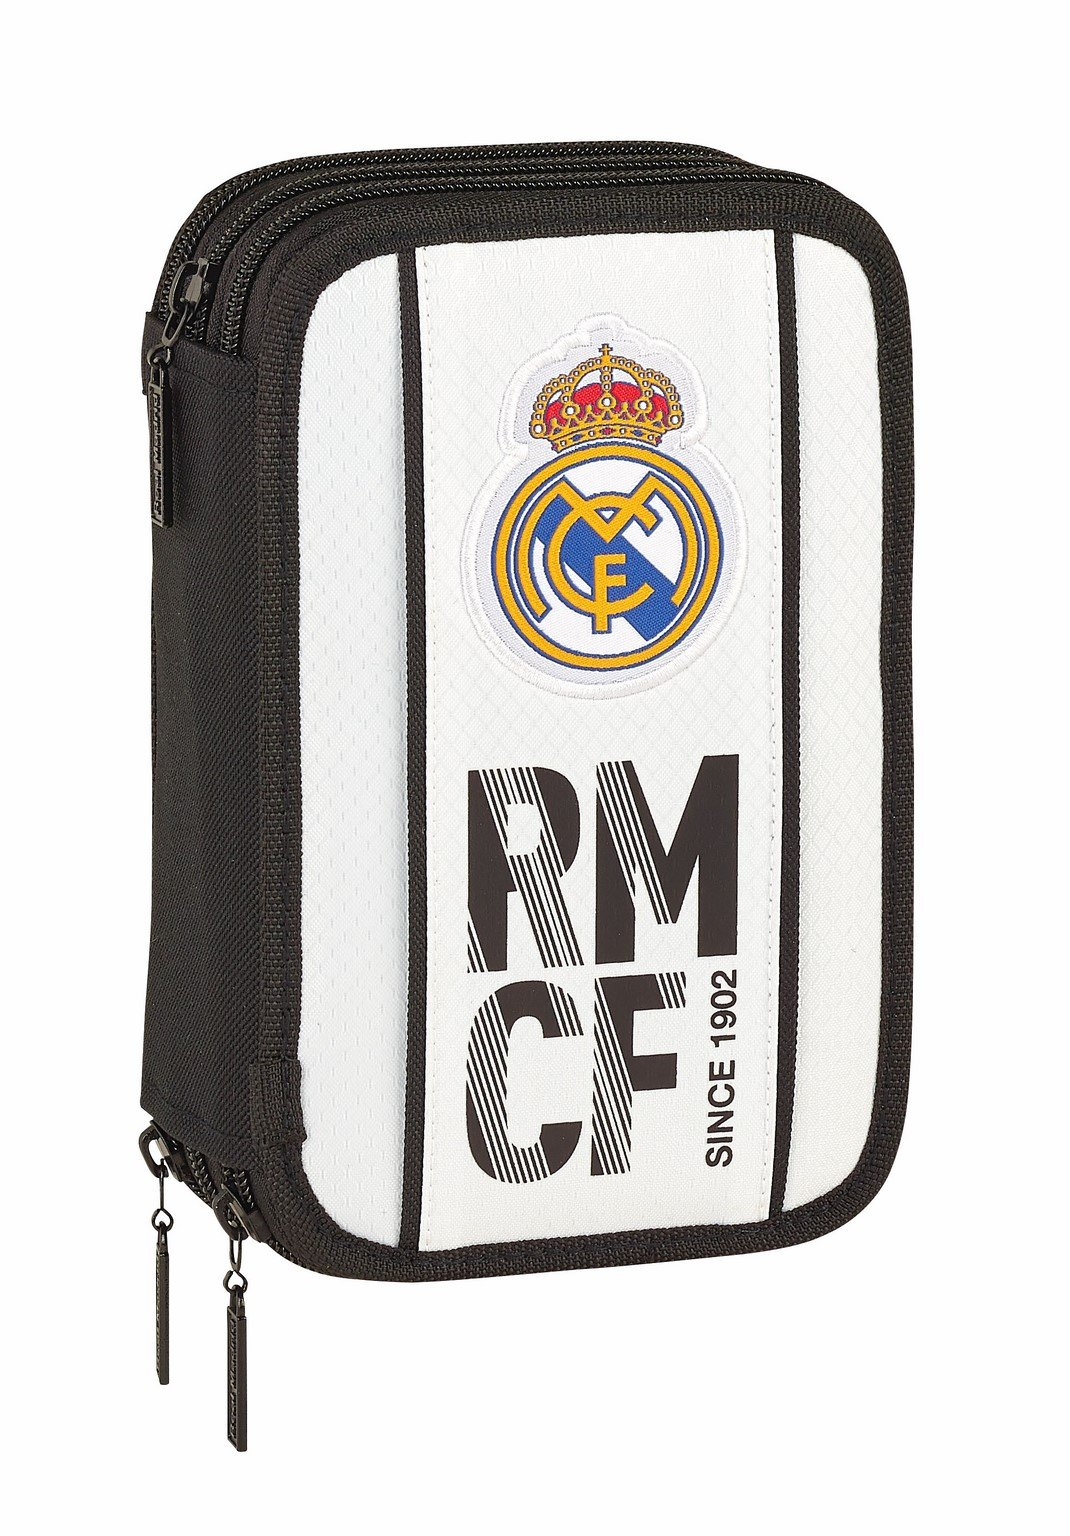 Safta Real Madrid 2018/2019 Plumier Triple 41 Piezas Real Madrid 20.5×13.5cm, Blanco